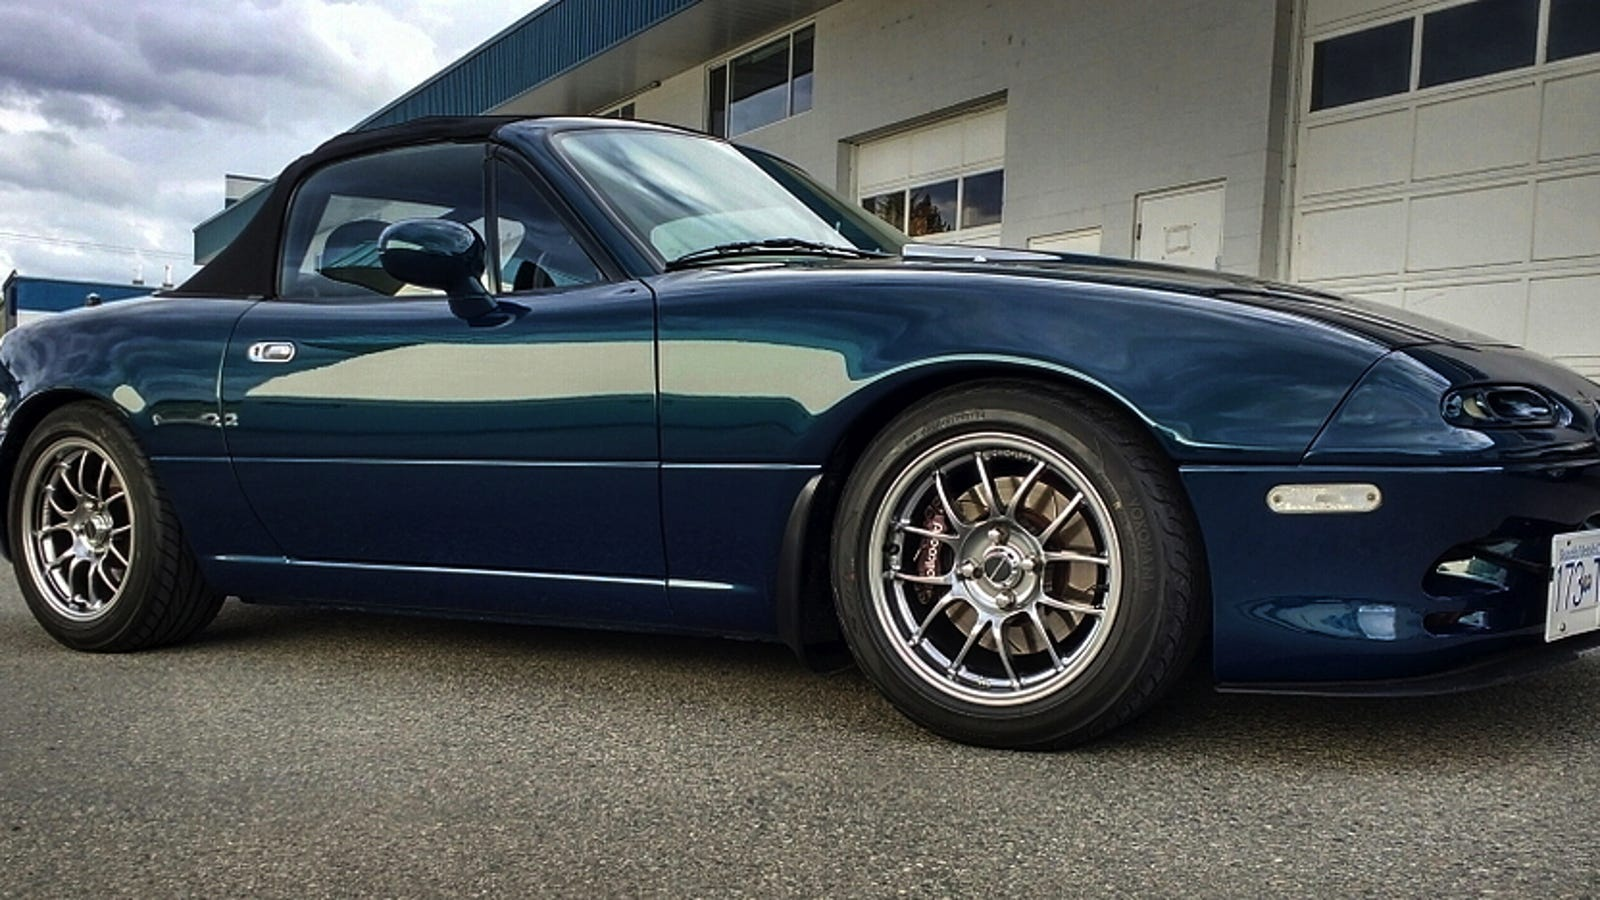 For $20,000 CA, Could This Custom 1994 Mazda MX5 M Edition